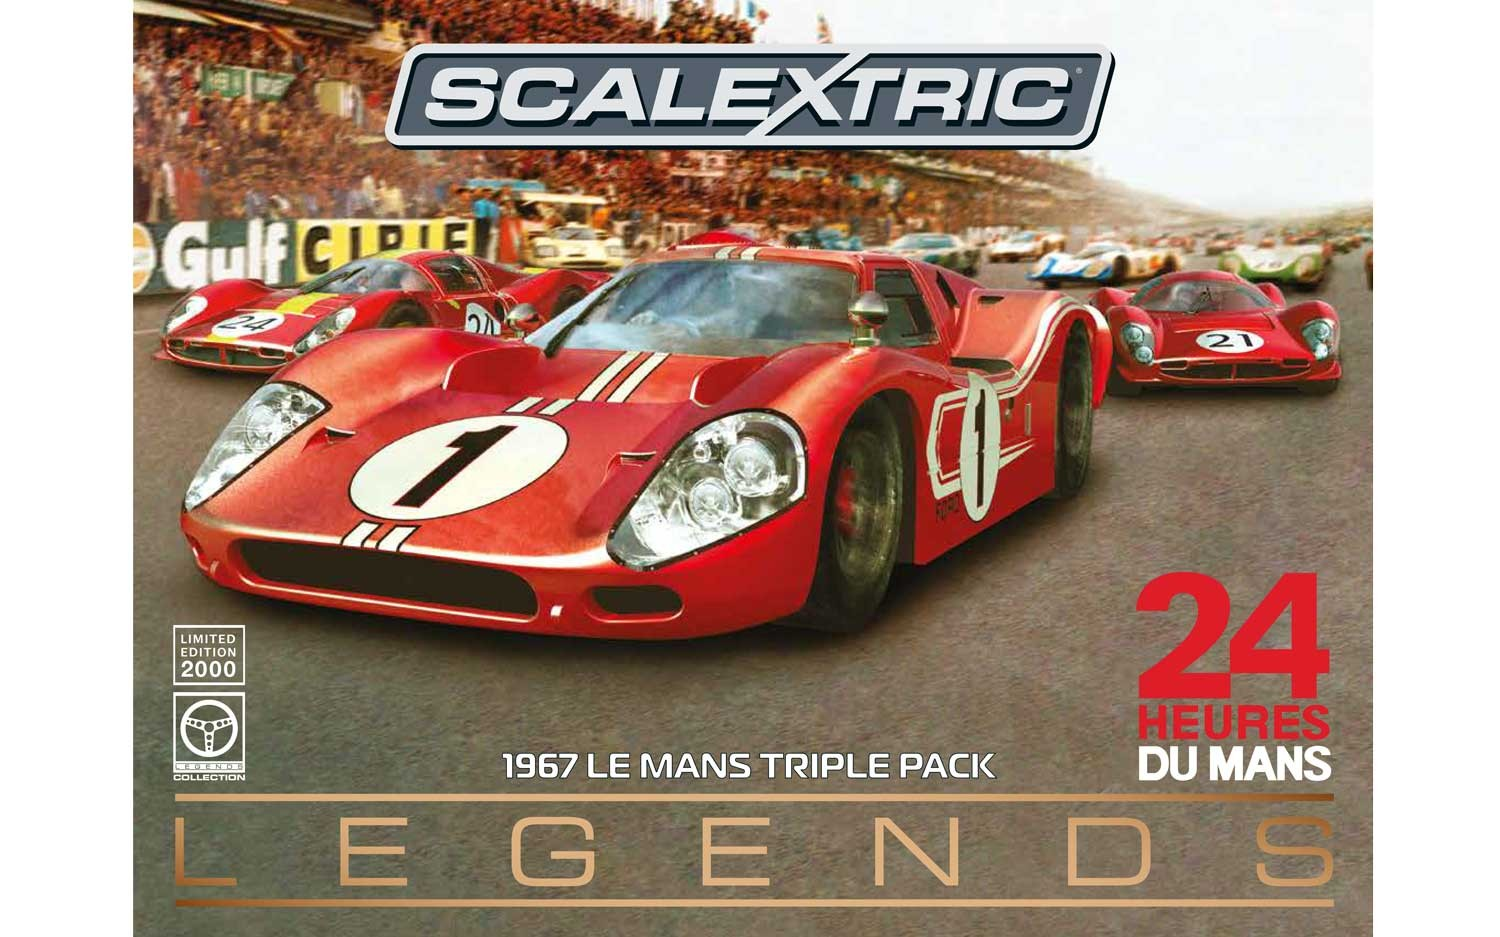 Legends 1967 Le Mans Triple Pack - Limited Edition